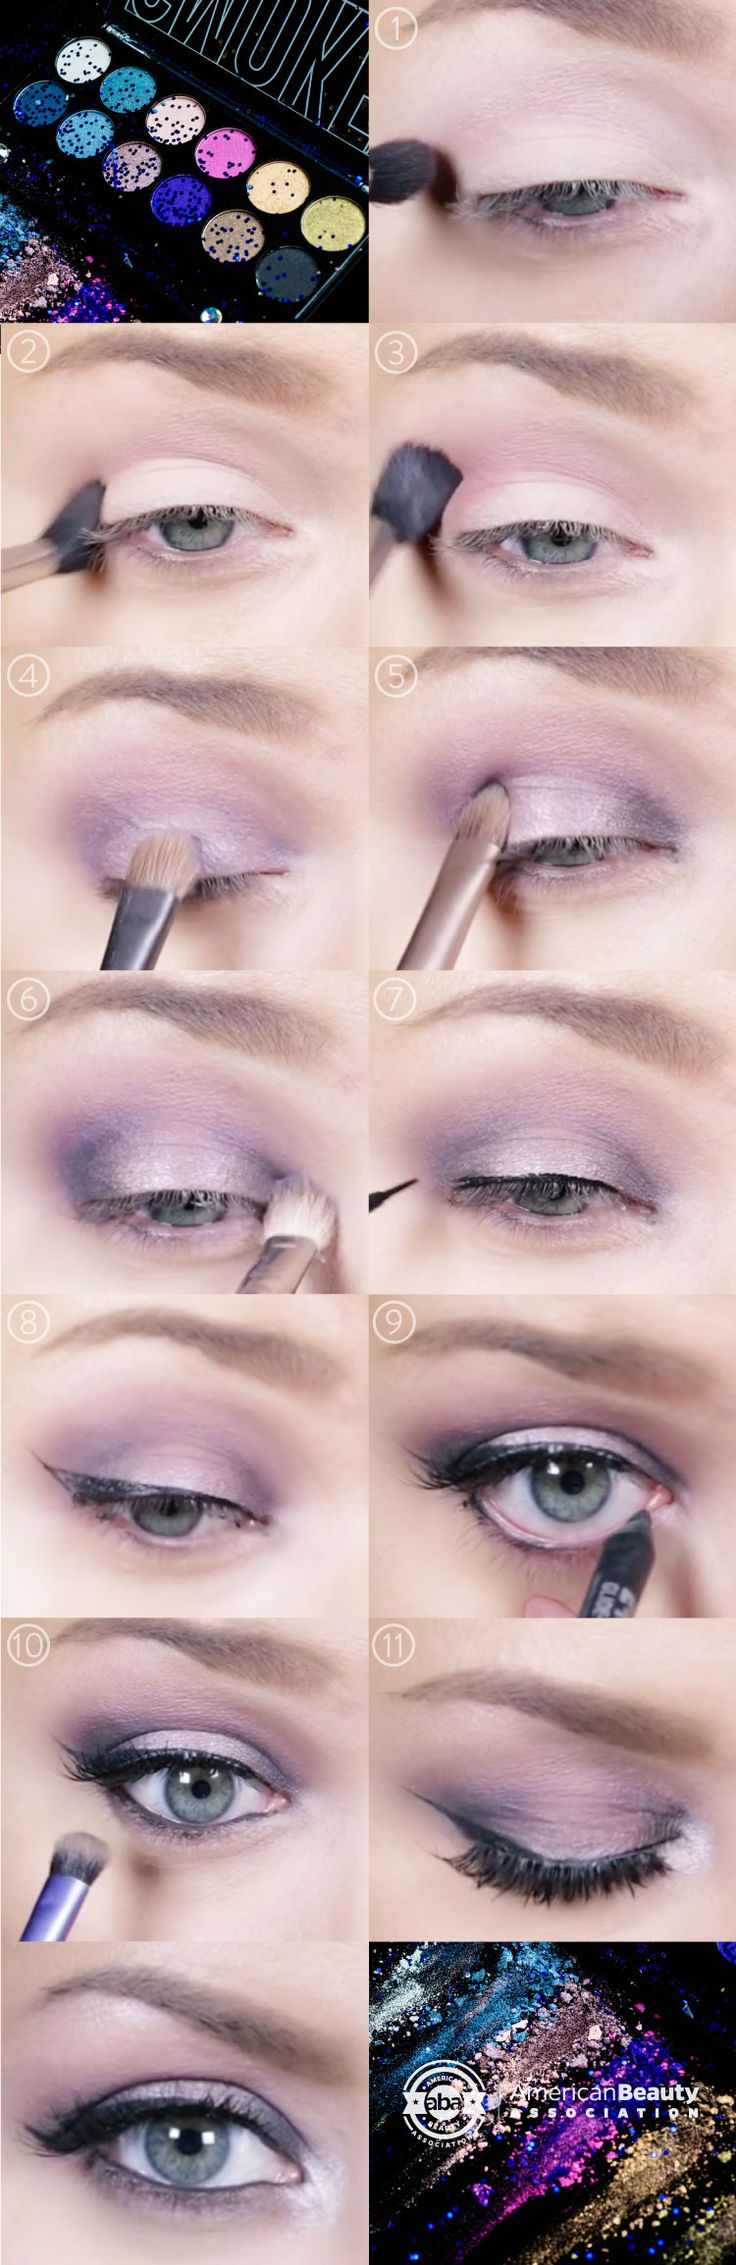 best beauty and skin care images on pinterest beauty makeup